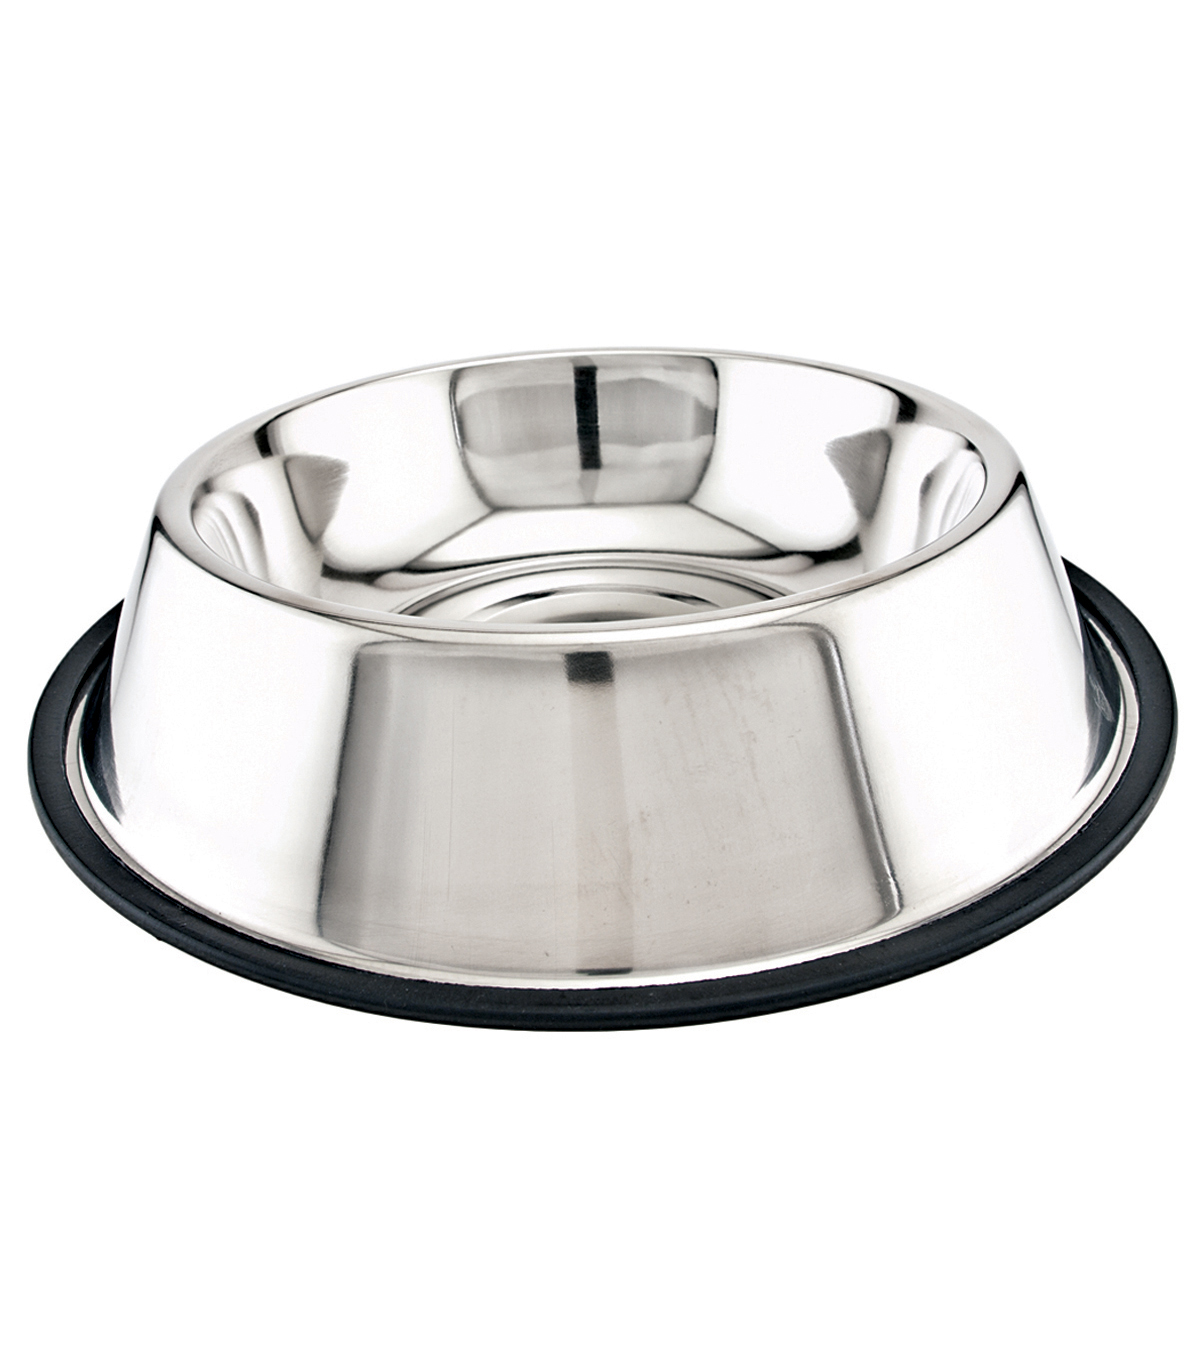 Westminster Pet Products Stainless Steel Non-Skid Dish 64oz